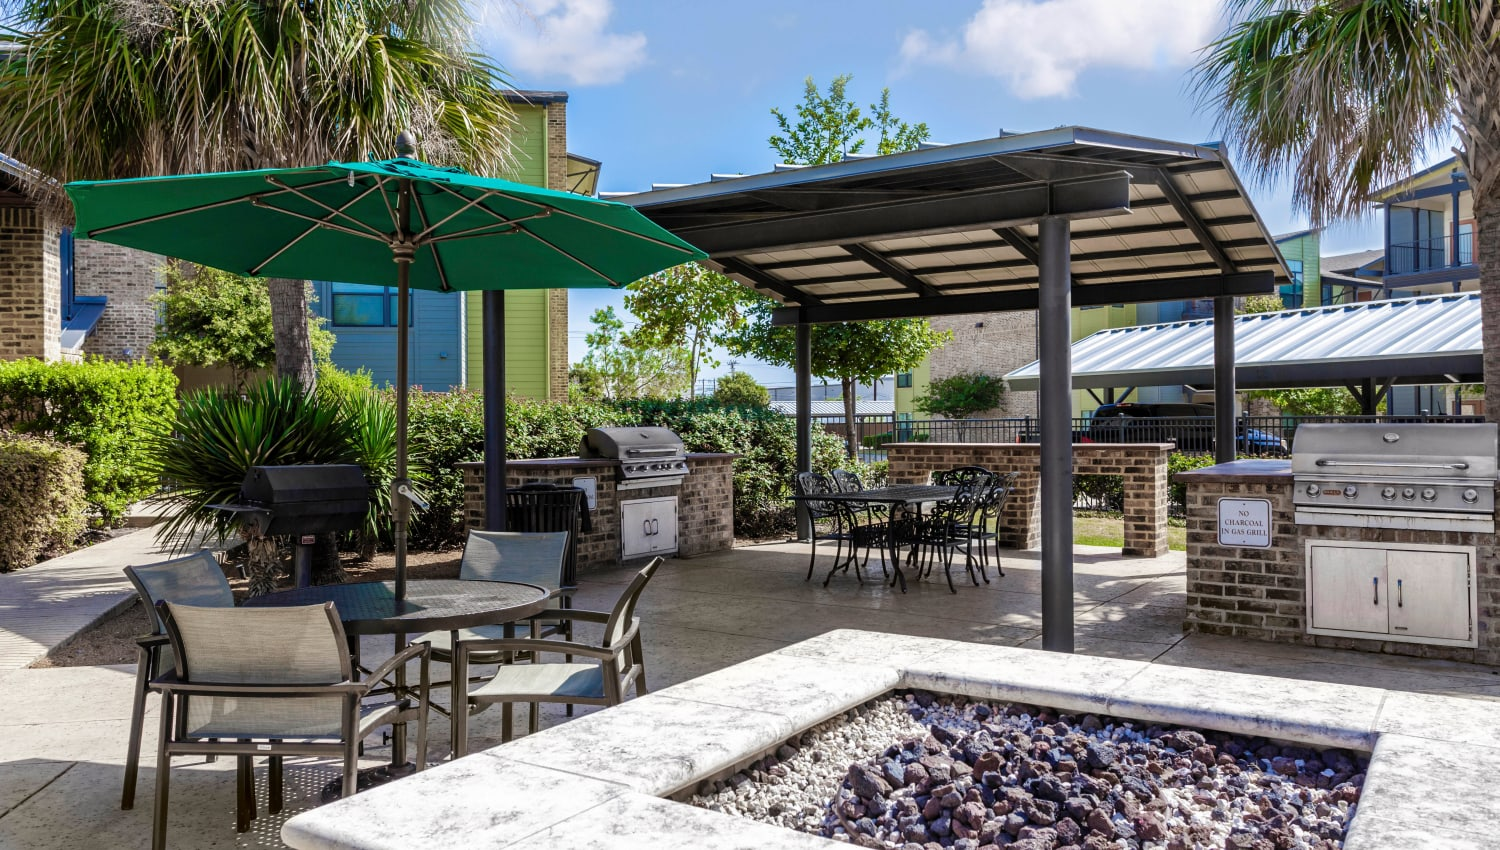 Fire pit area with shaded seating nearby at Tacara at Westover Hills in San Antonio, Texas